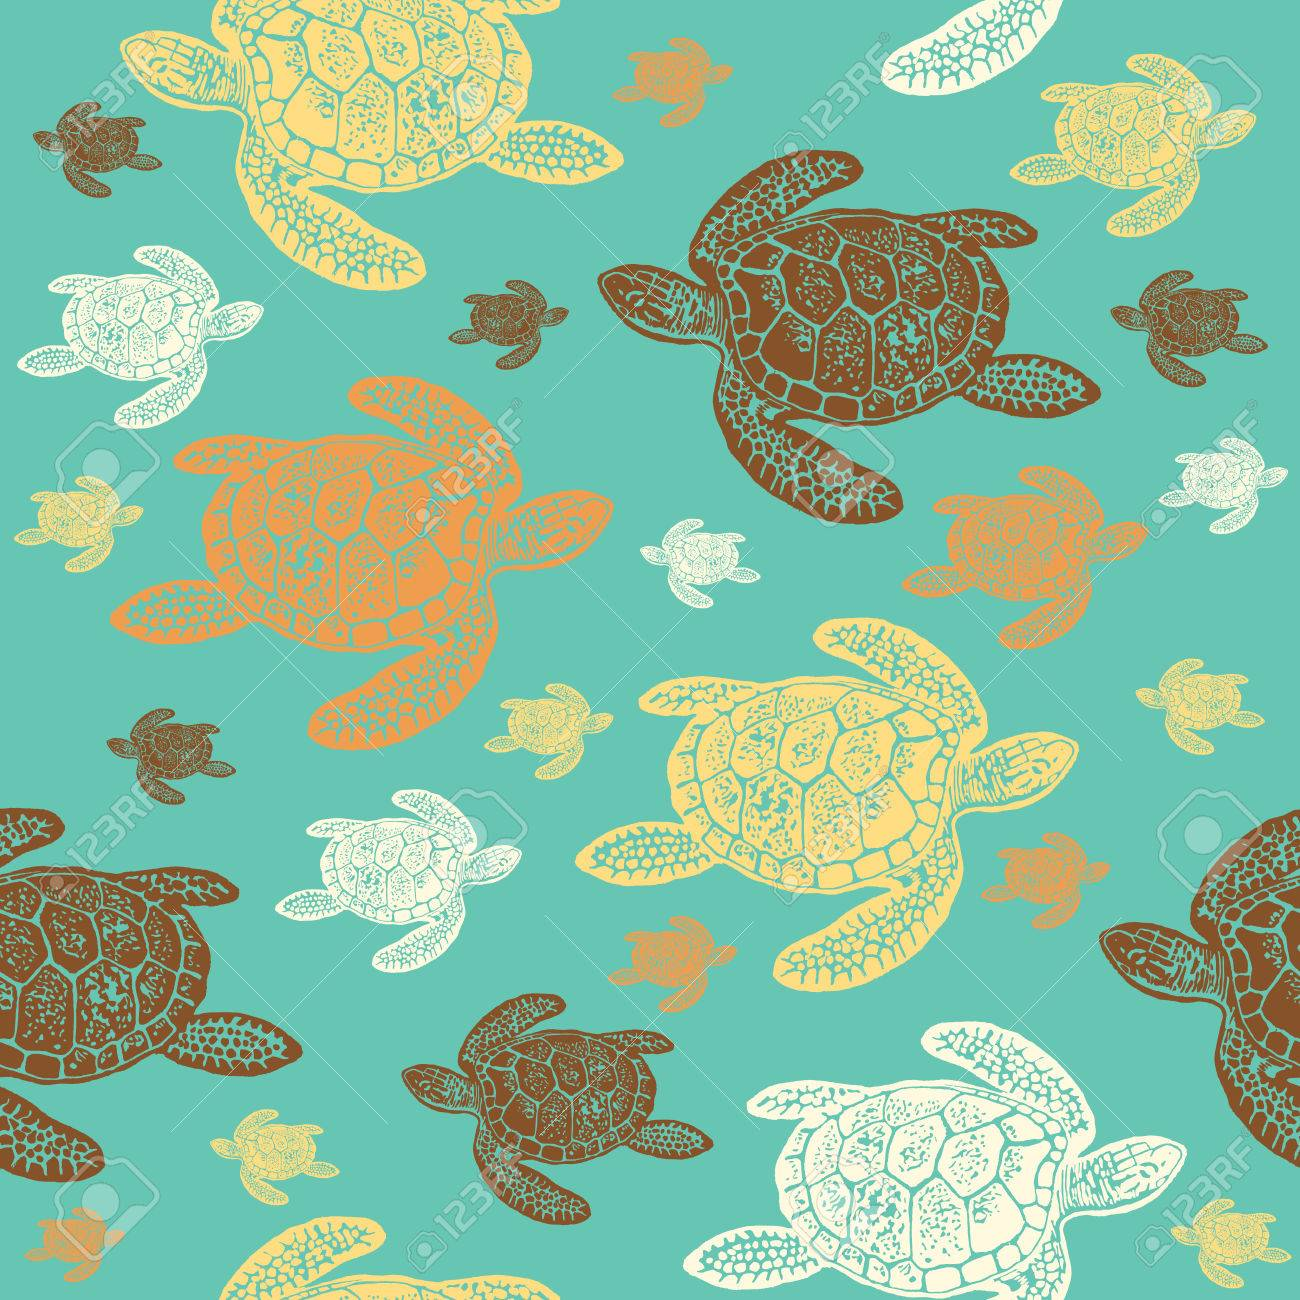 Sea Turtles Pattern Seamless Colore Le Style Realiste Grave Des